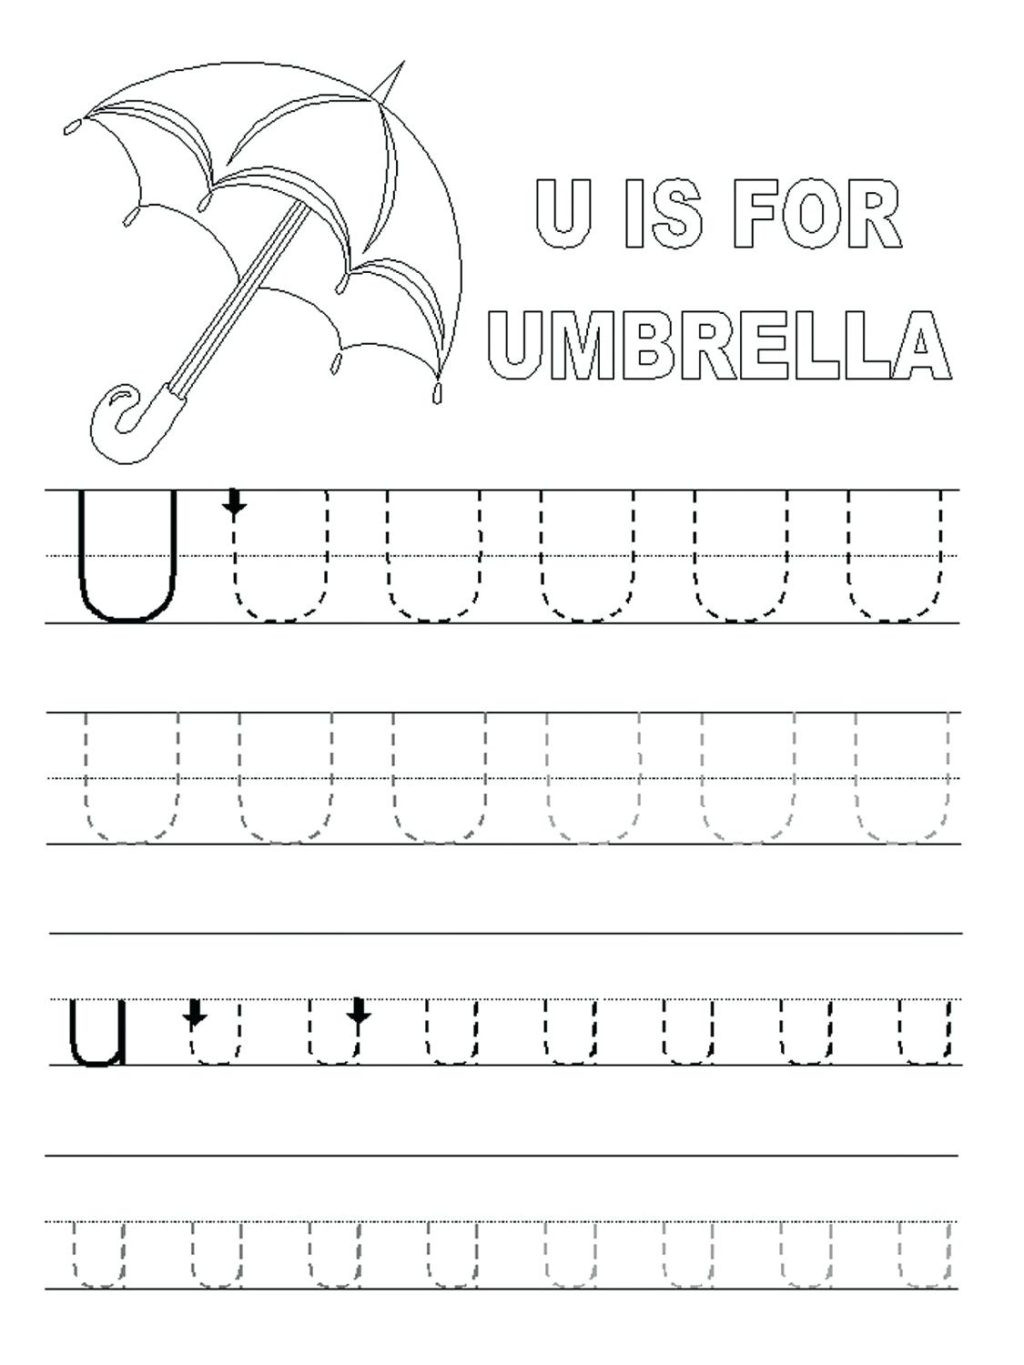 Preschool Letter Recognition Worksheets Worksheet Practice Sheet Worksheet Animal Matching